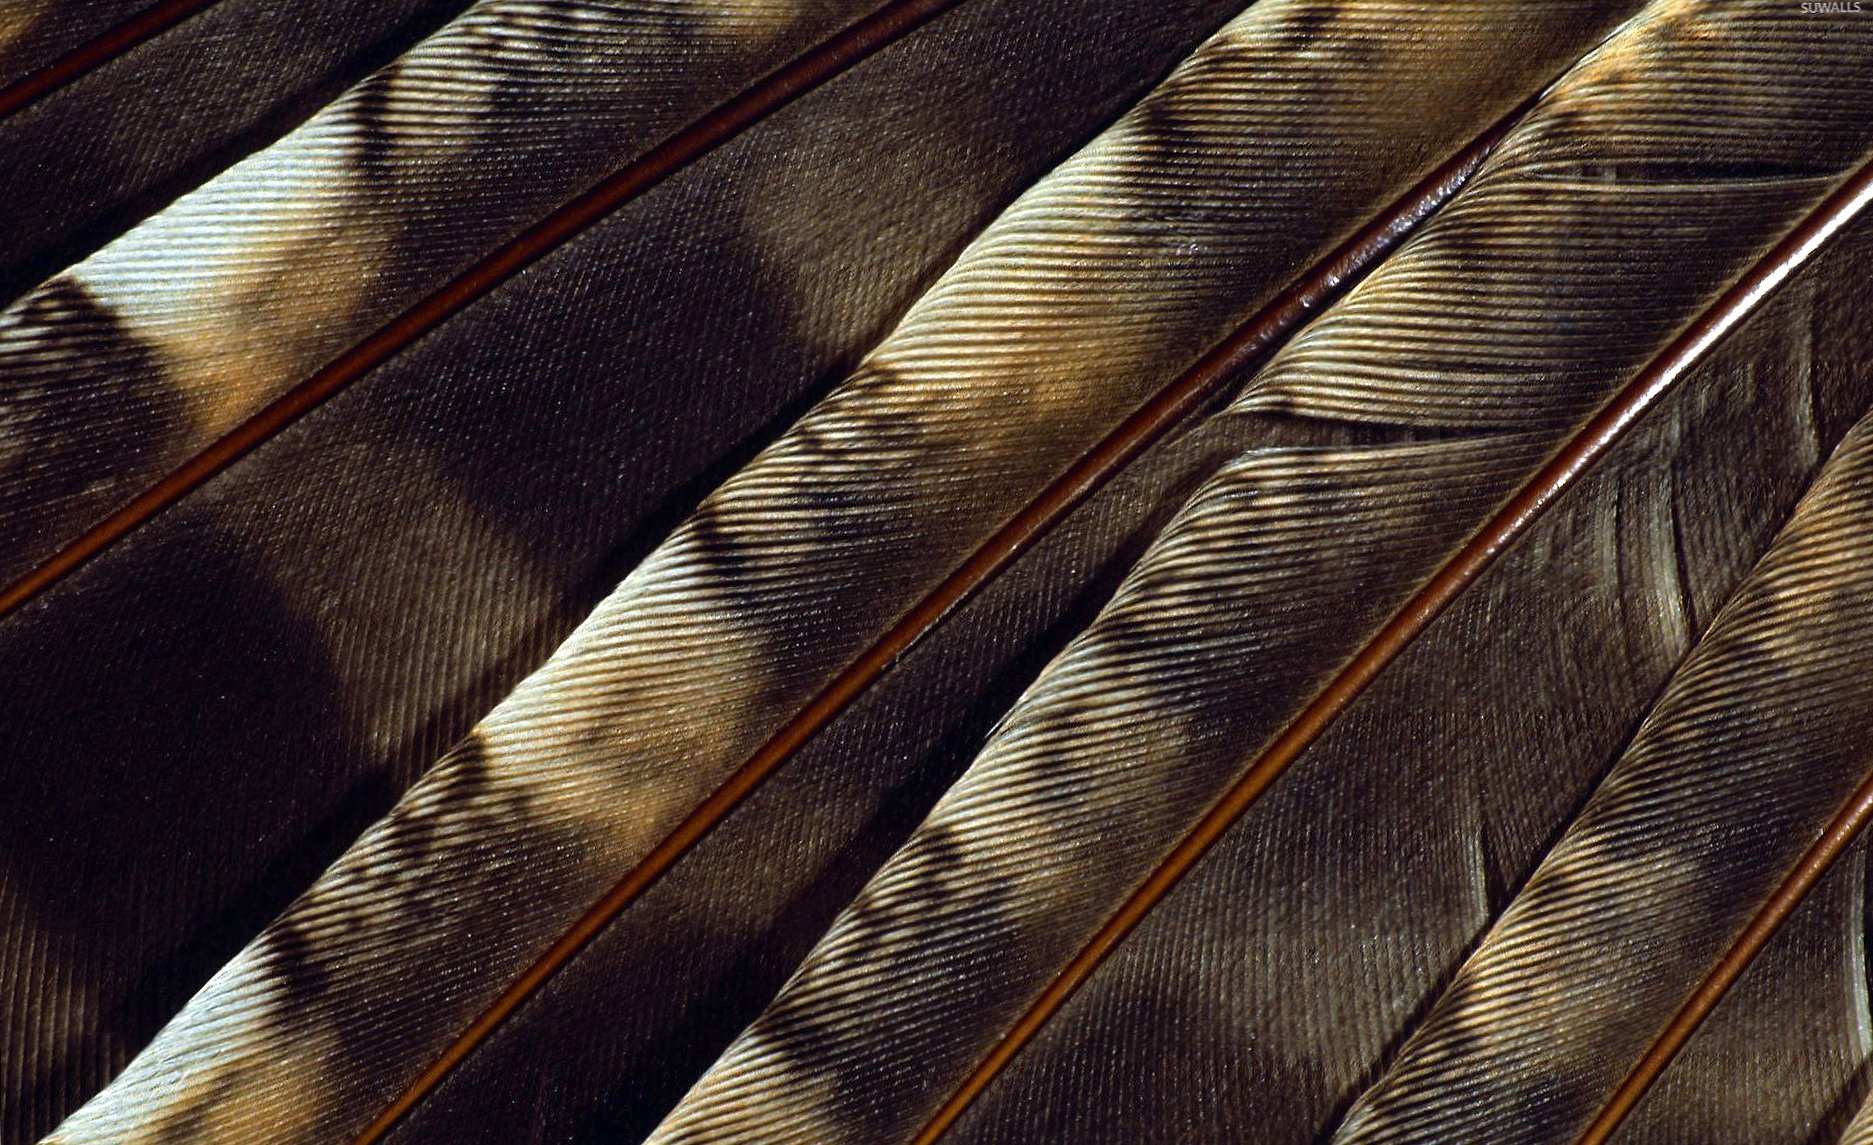 Brown feathers close-up wallpapers HD quality